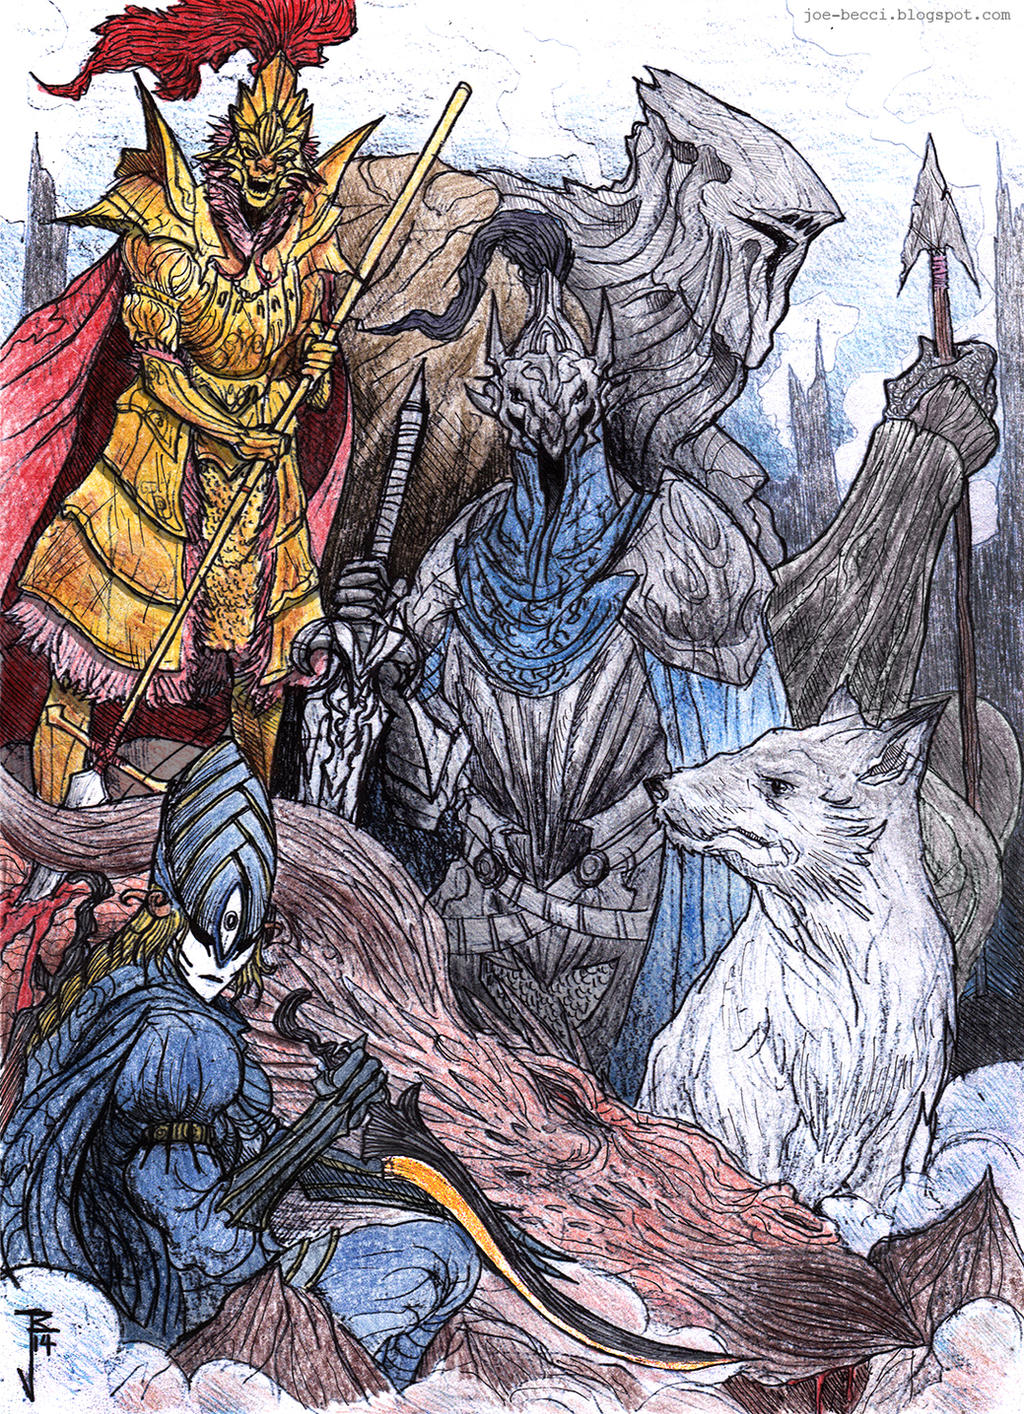 The Old Dragonslayers by Fuelreaver